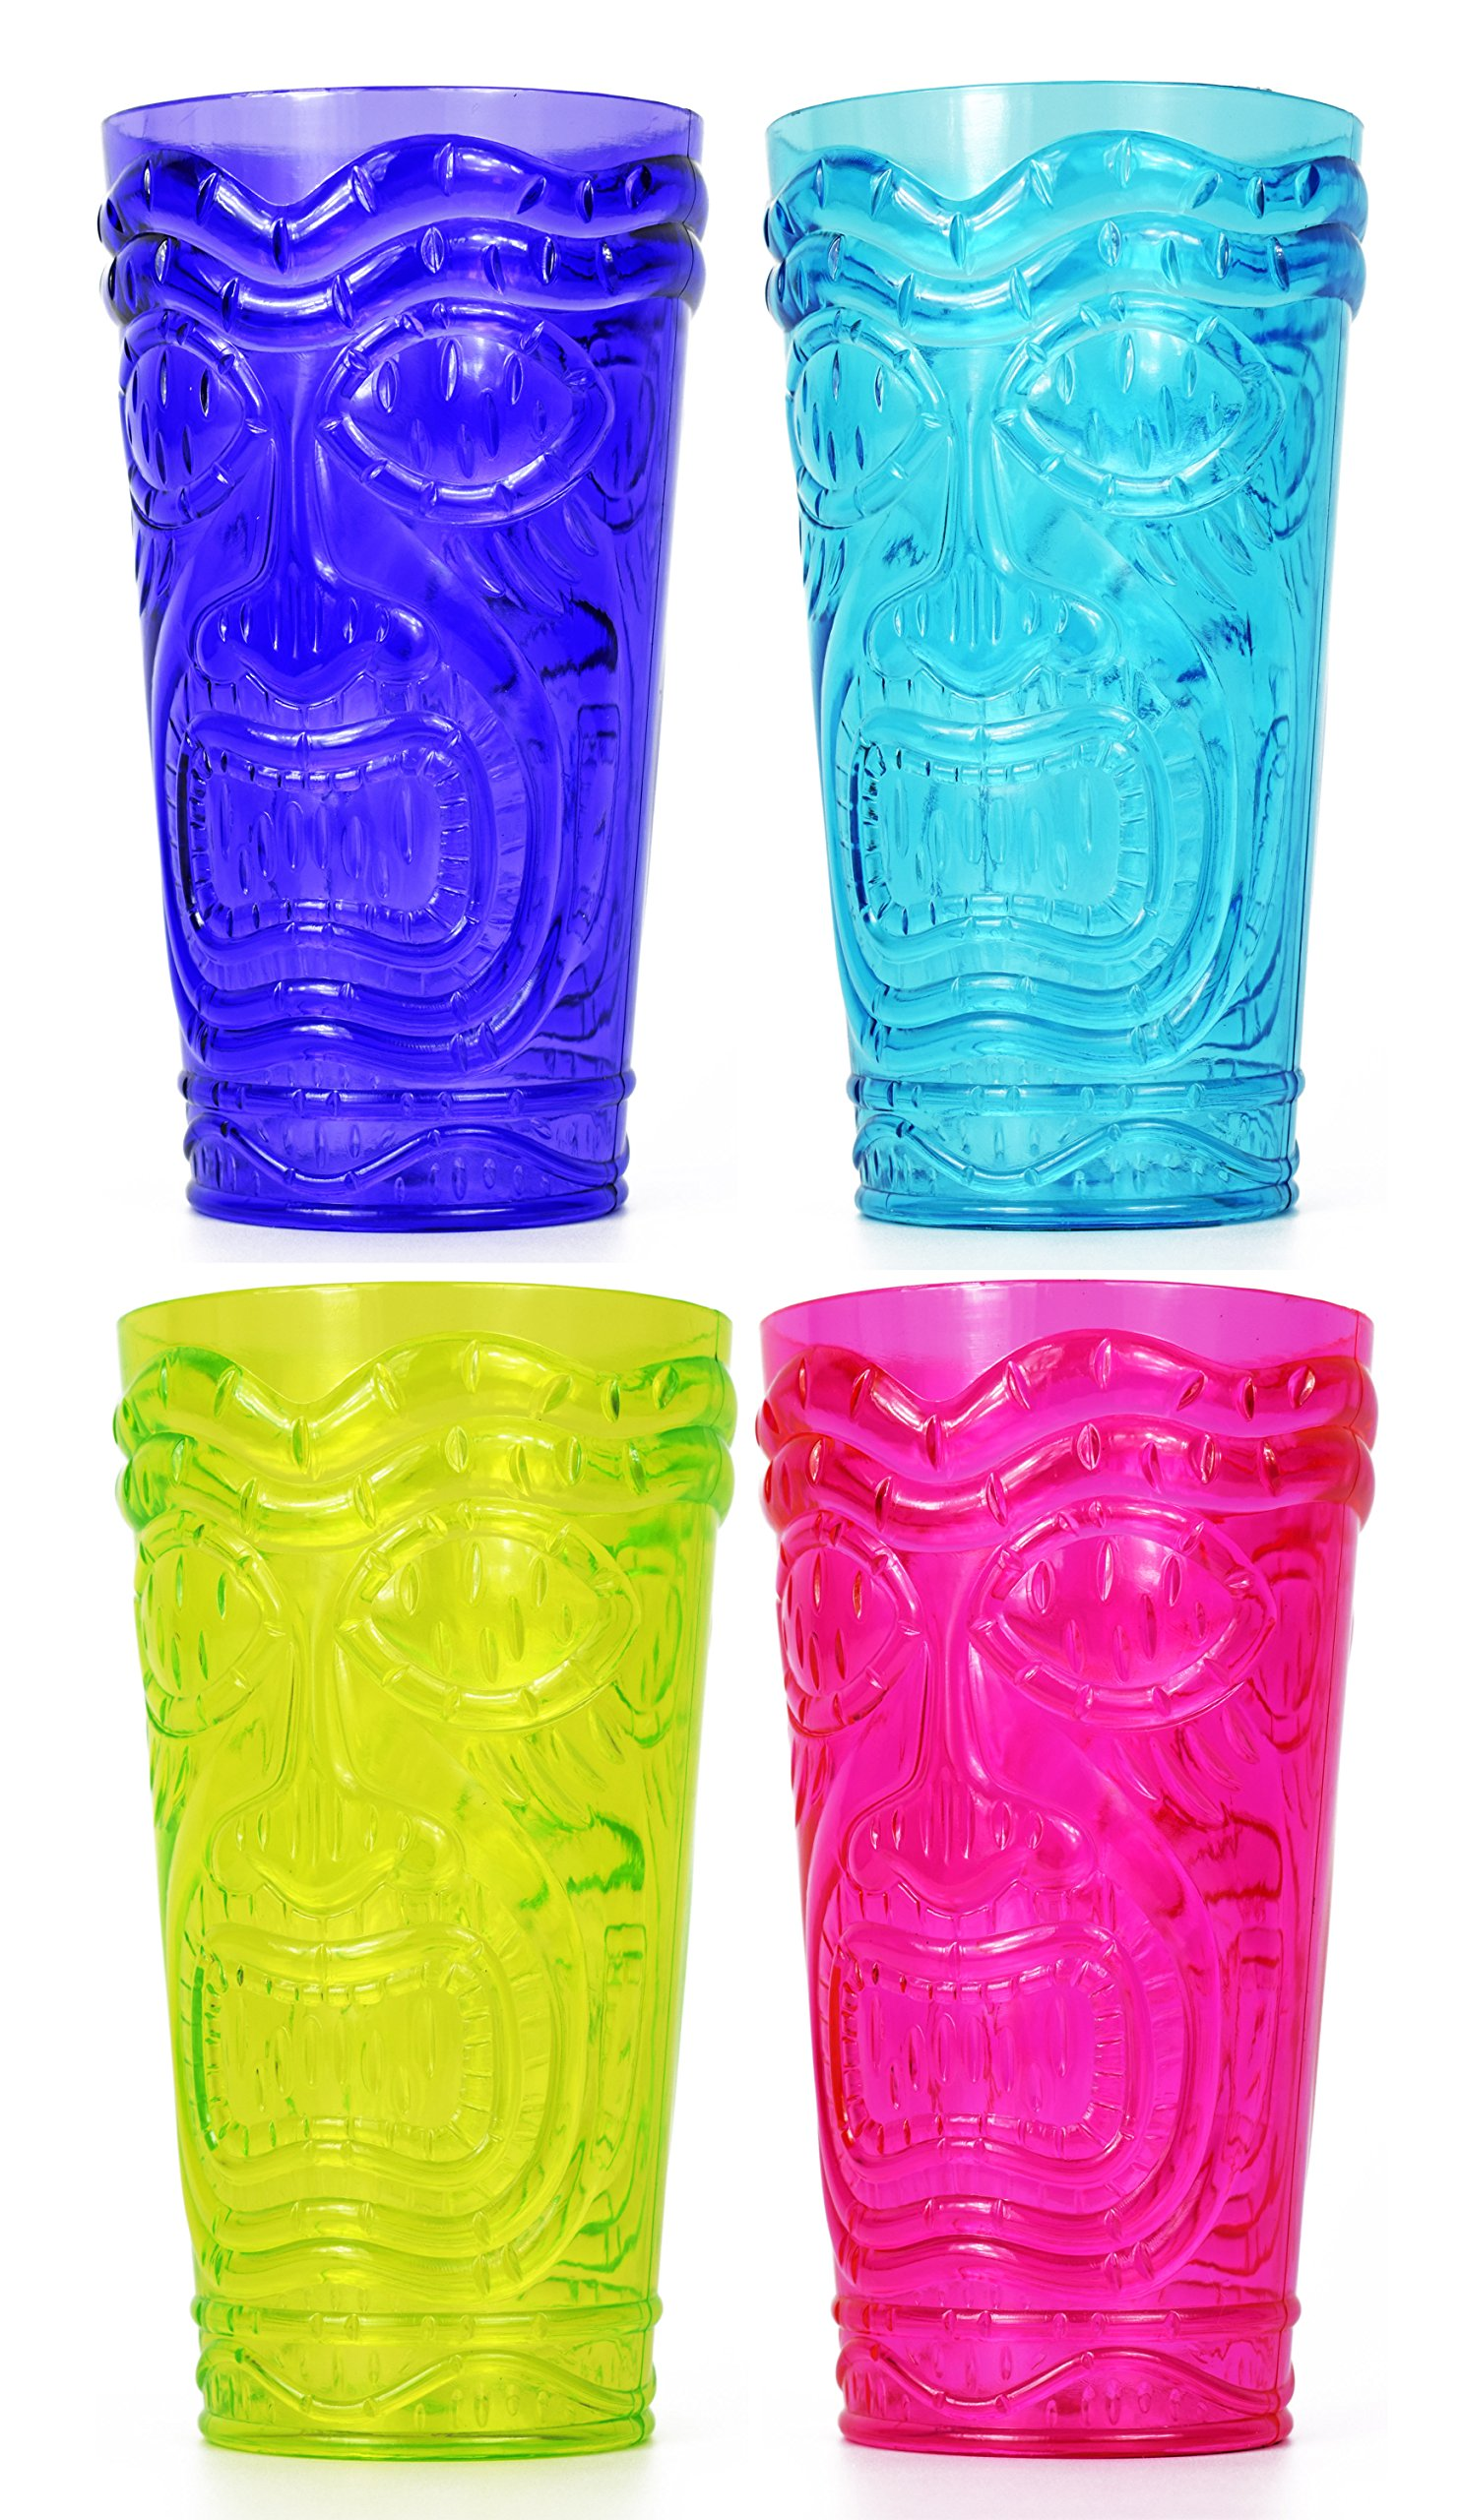 Set of 4 Party Tiki Cups! BPA Free 16 Ounce Tumbler Drinkware Set Luau Shape! 4 Bright Colors! Tiki Mugs! Reusable Plastic Party Cups!